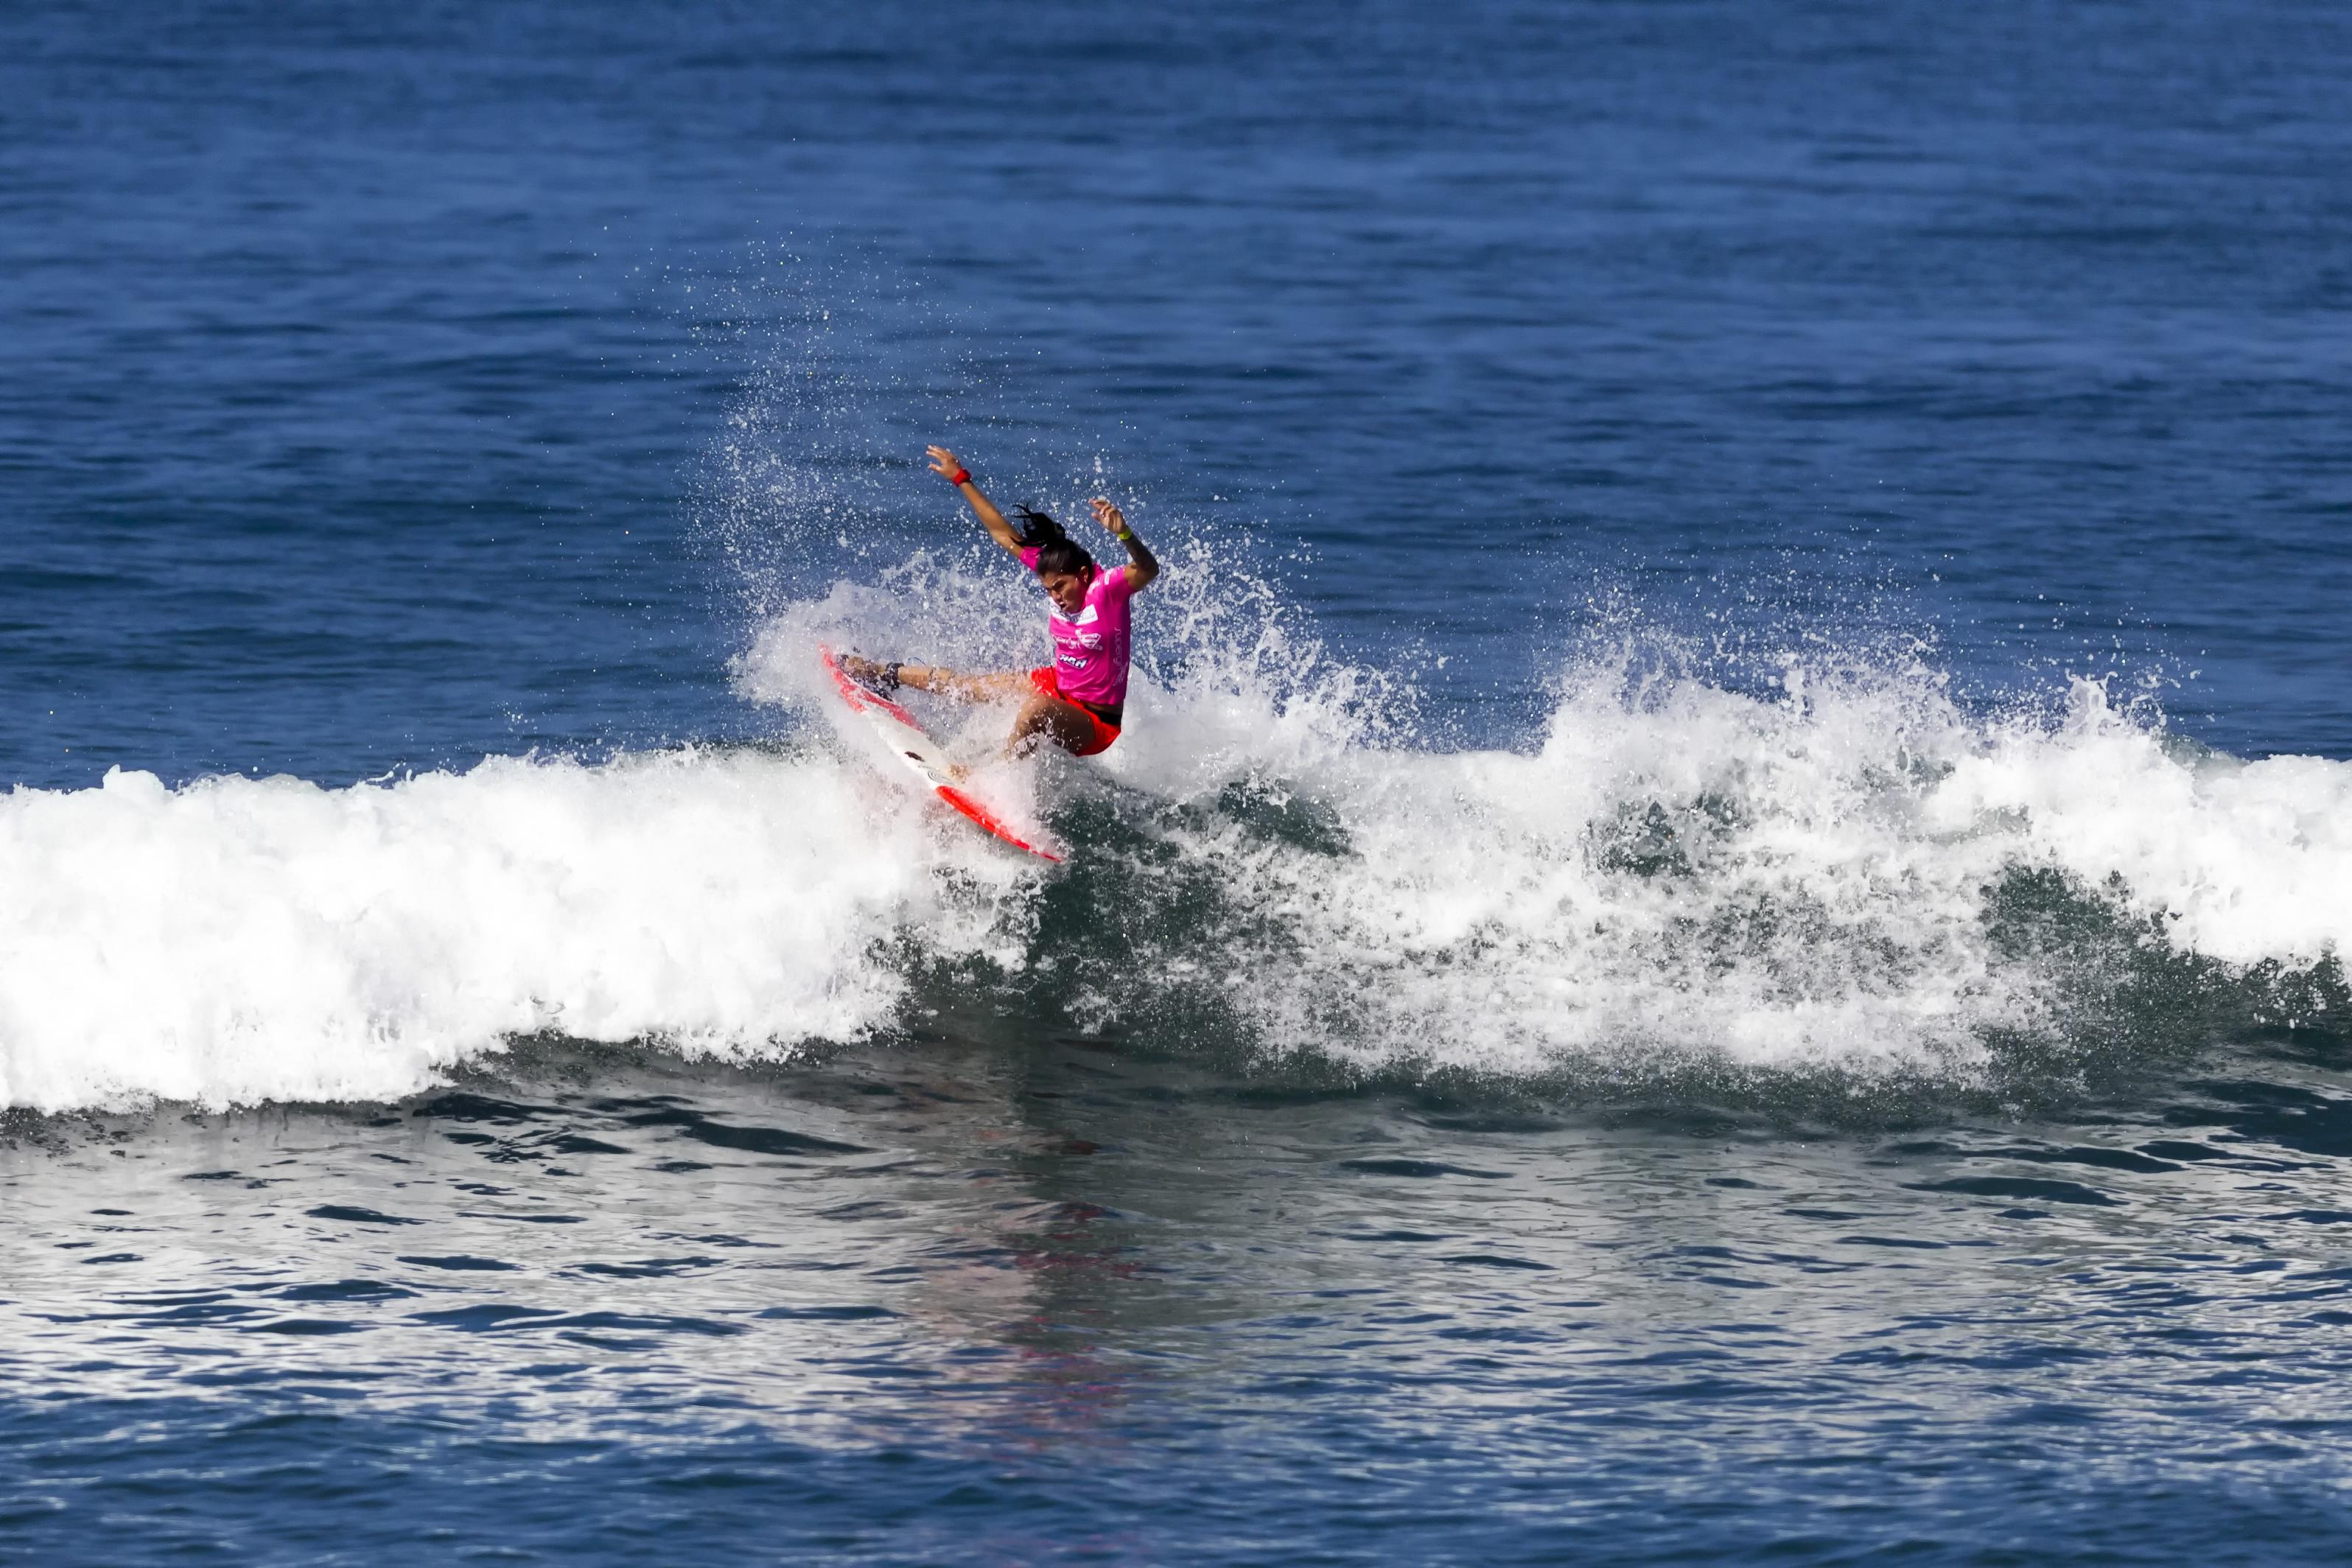 Silvana Lima from Brazil competes at the Paul Mitchell Supergirl Pro during Round 4, Heat 2 in Oceanside. Photo by Bill Reilly